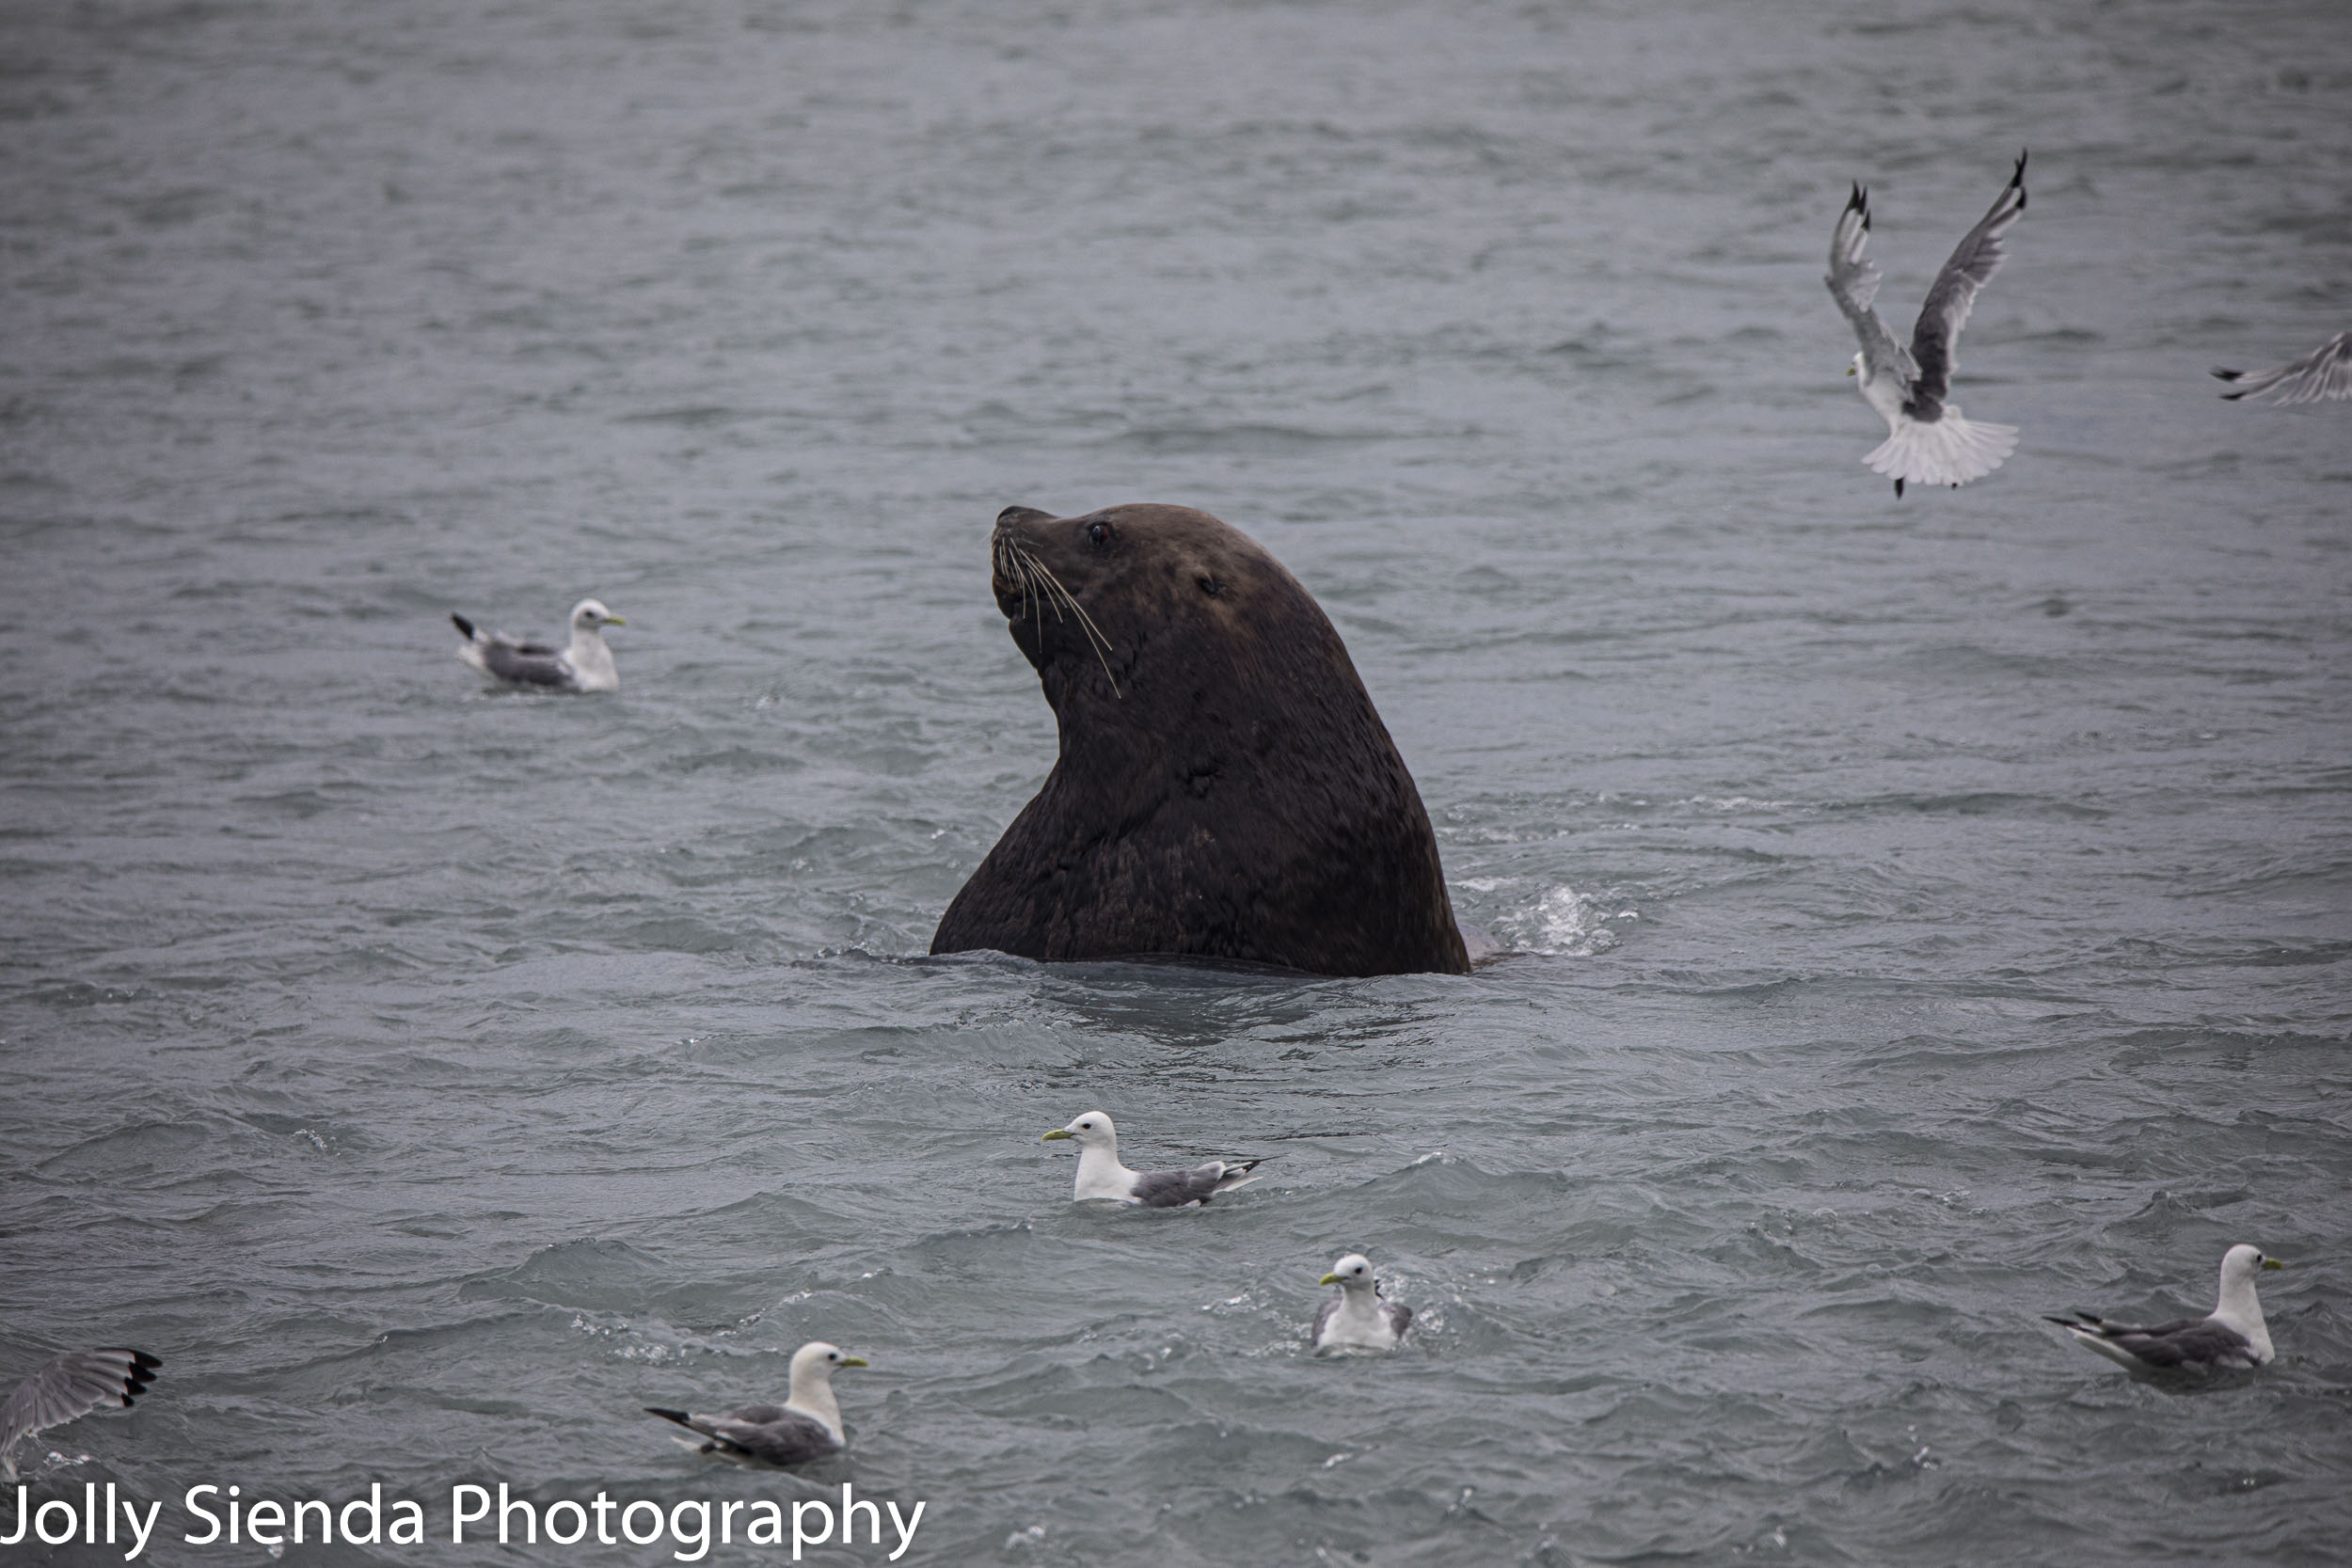 Sea Lion and seagulls